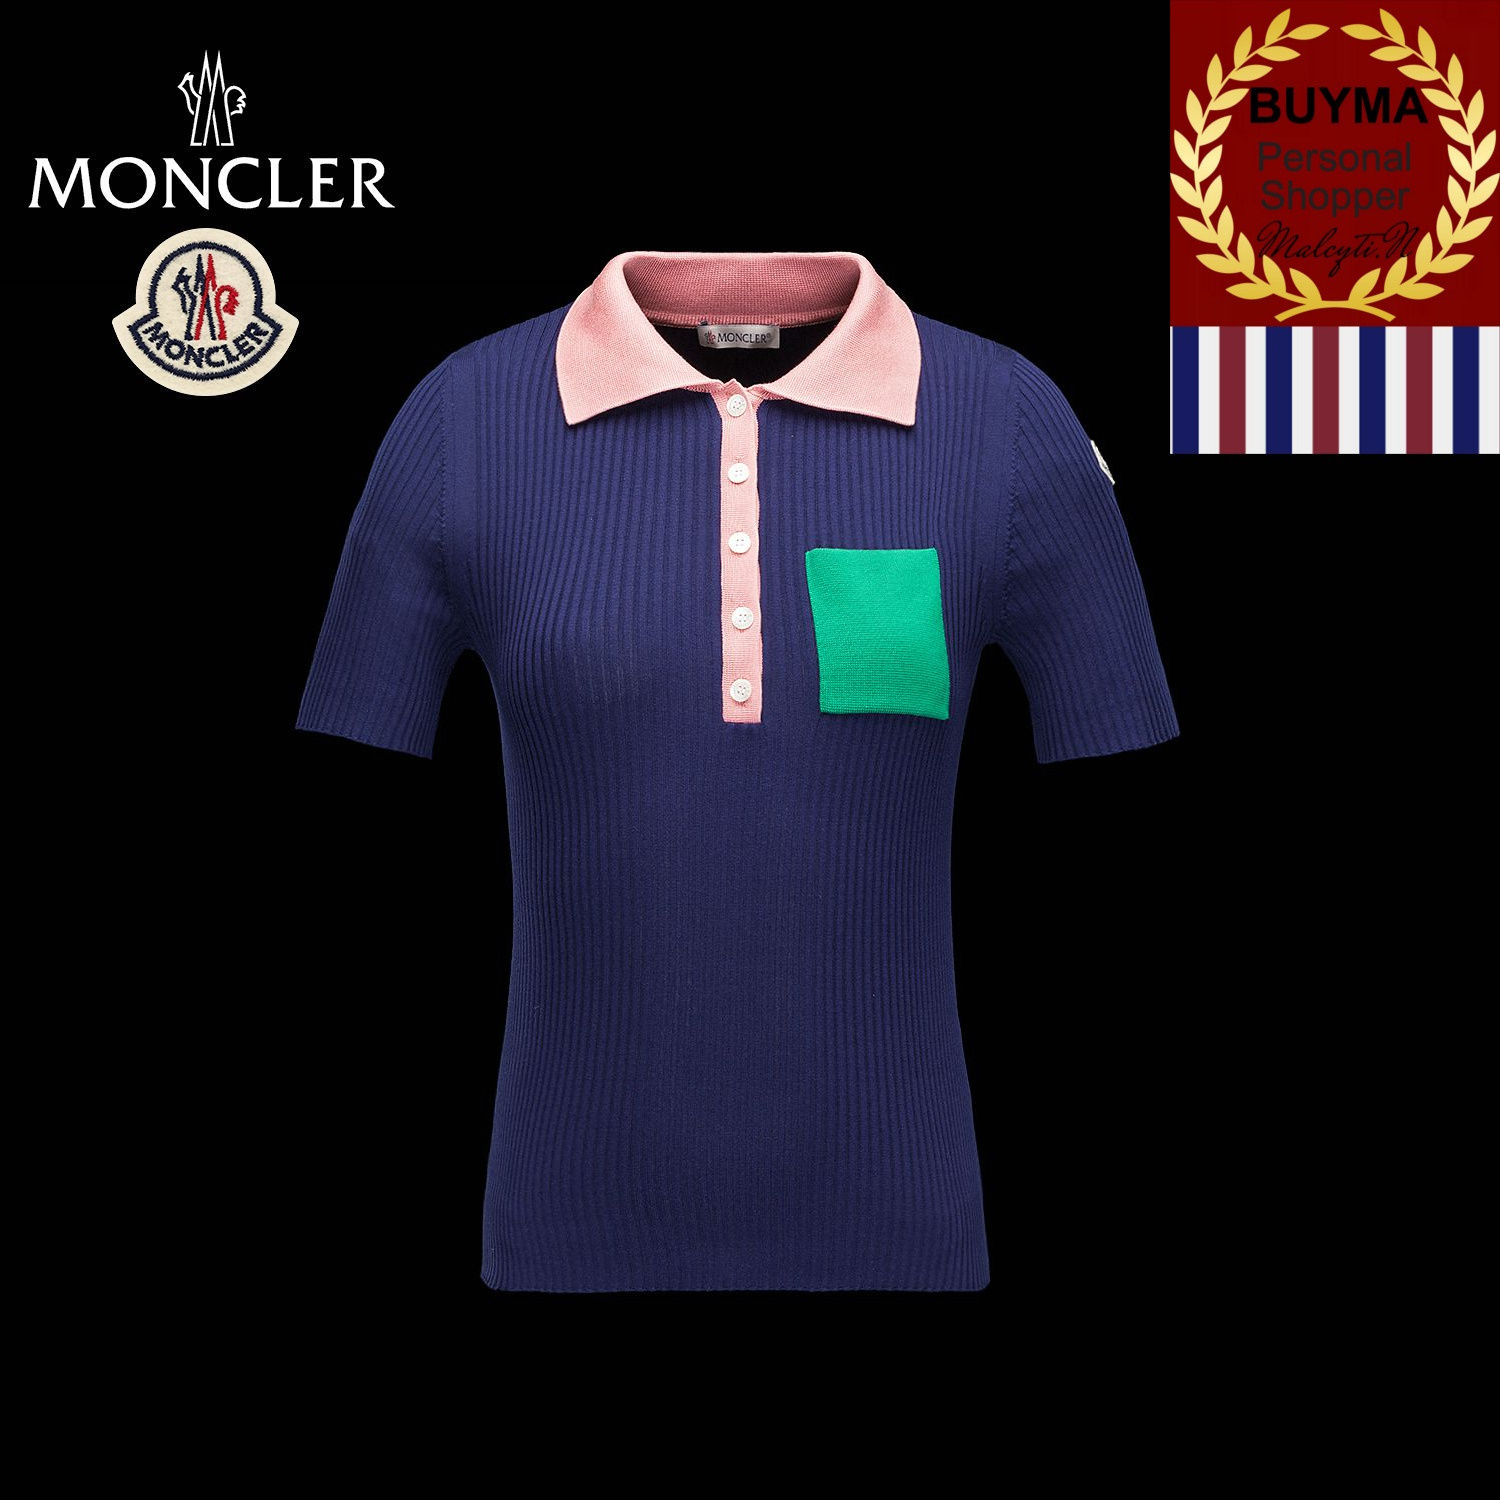 MONCLER POLO シルク リブ編 ポロシャツ ダークブルー/ピンク/緑